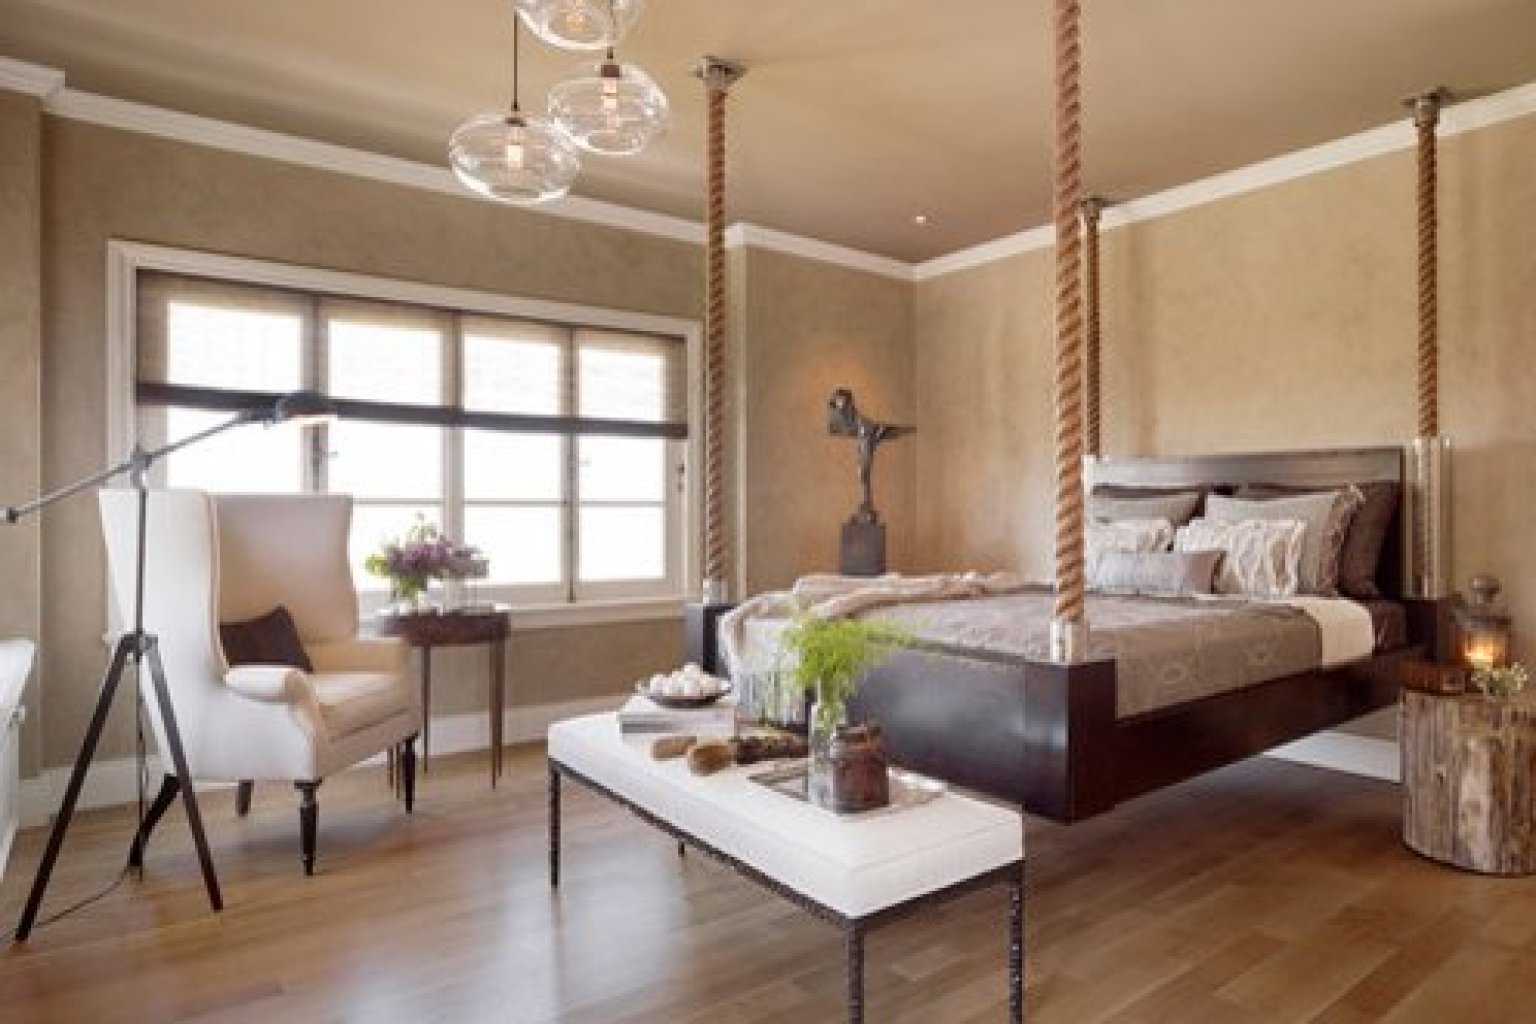 Design Swinging Beds 10 hanging beds that you totally need to sleep on photos huffpost